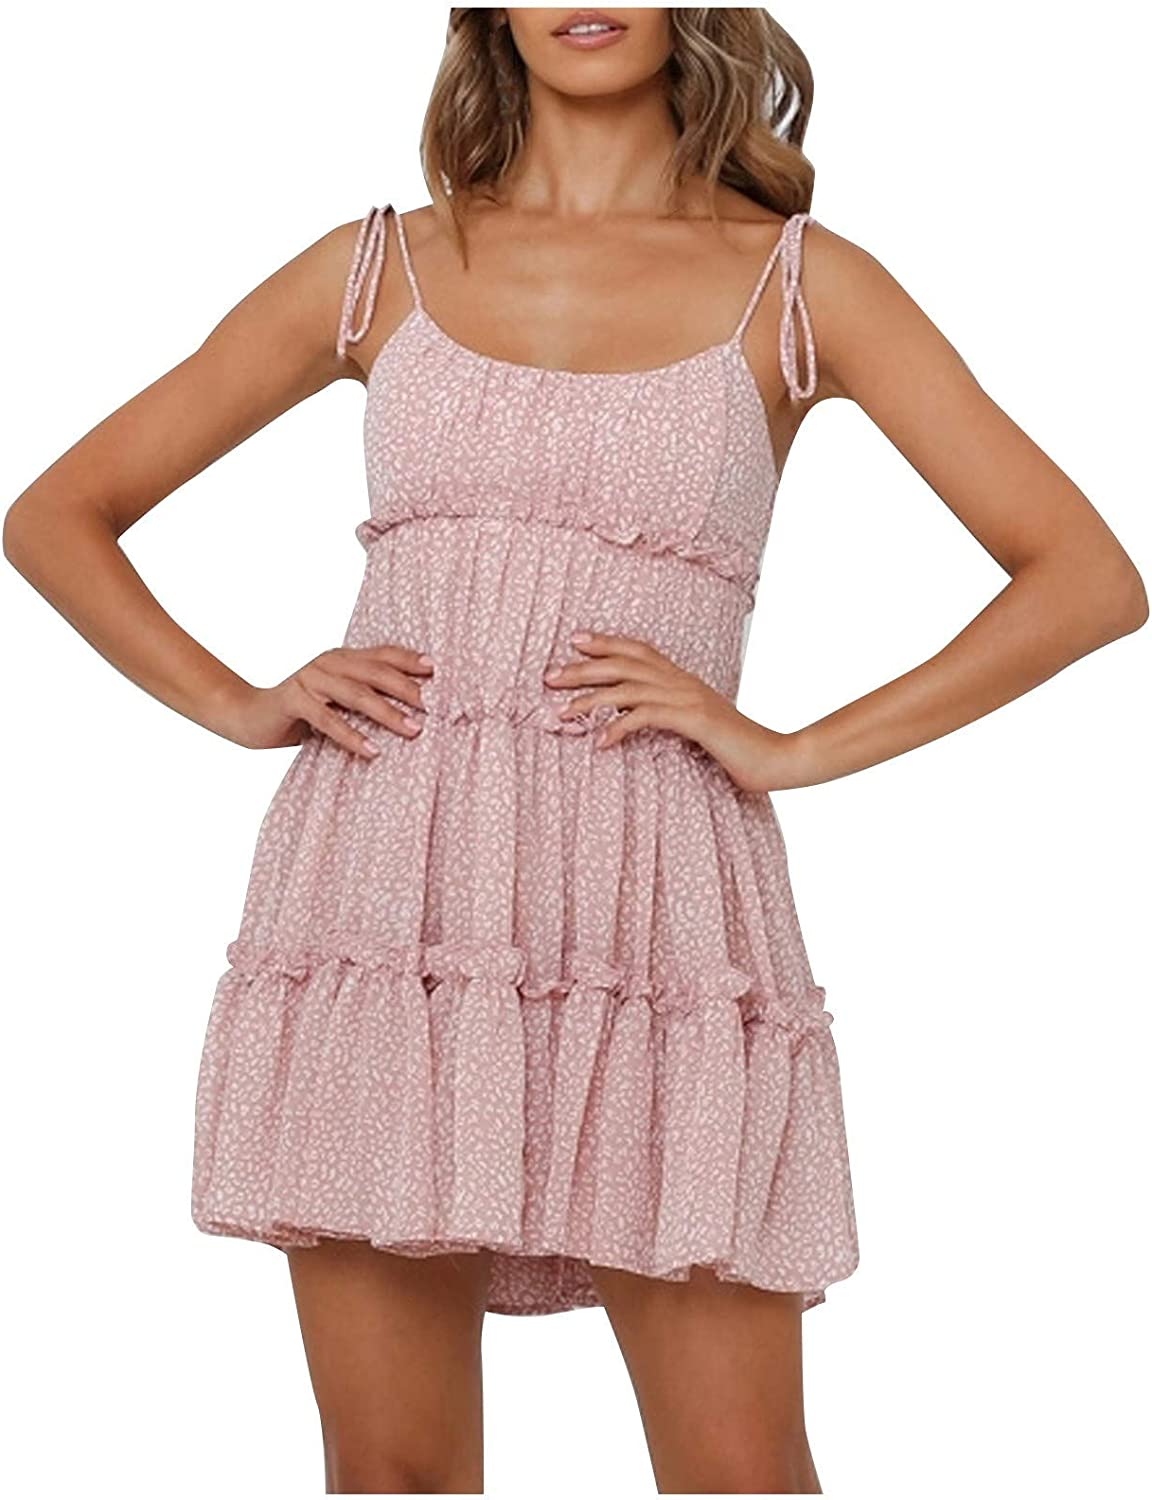 Gorday Dress for Women Women's Boho Summer Max 76% Ranking TOP1 OFF Flora Dresses Casual